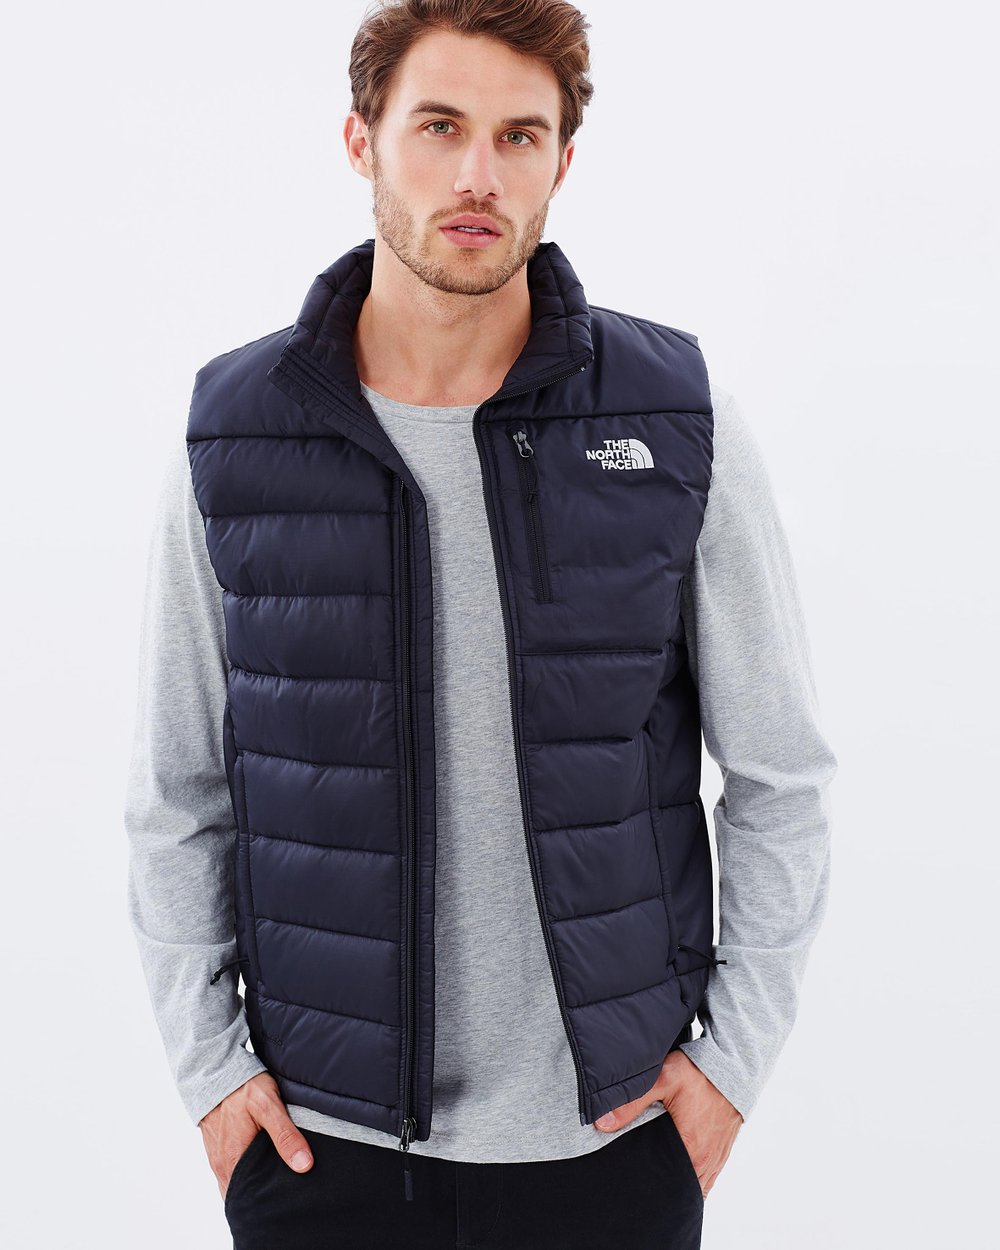 47a00242c63e Mens Aconcagua Vest By The North Face Online The Iconic Australia ...